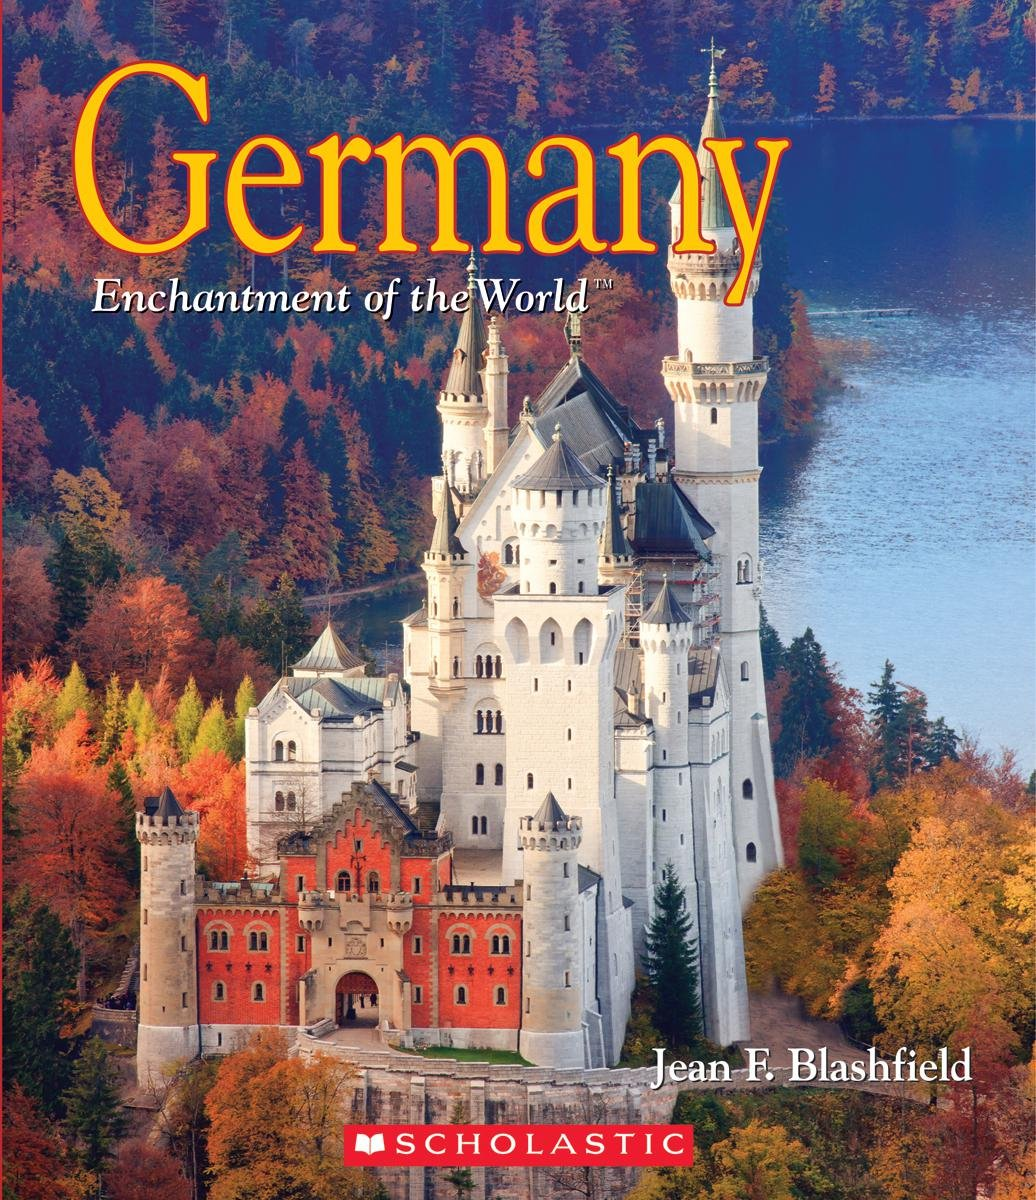 Germany (Enchantment of the World, Second Series)